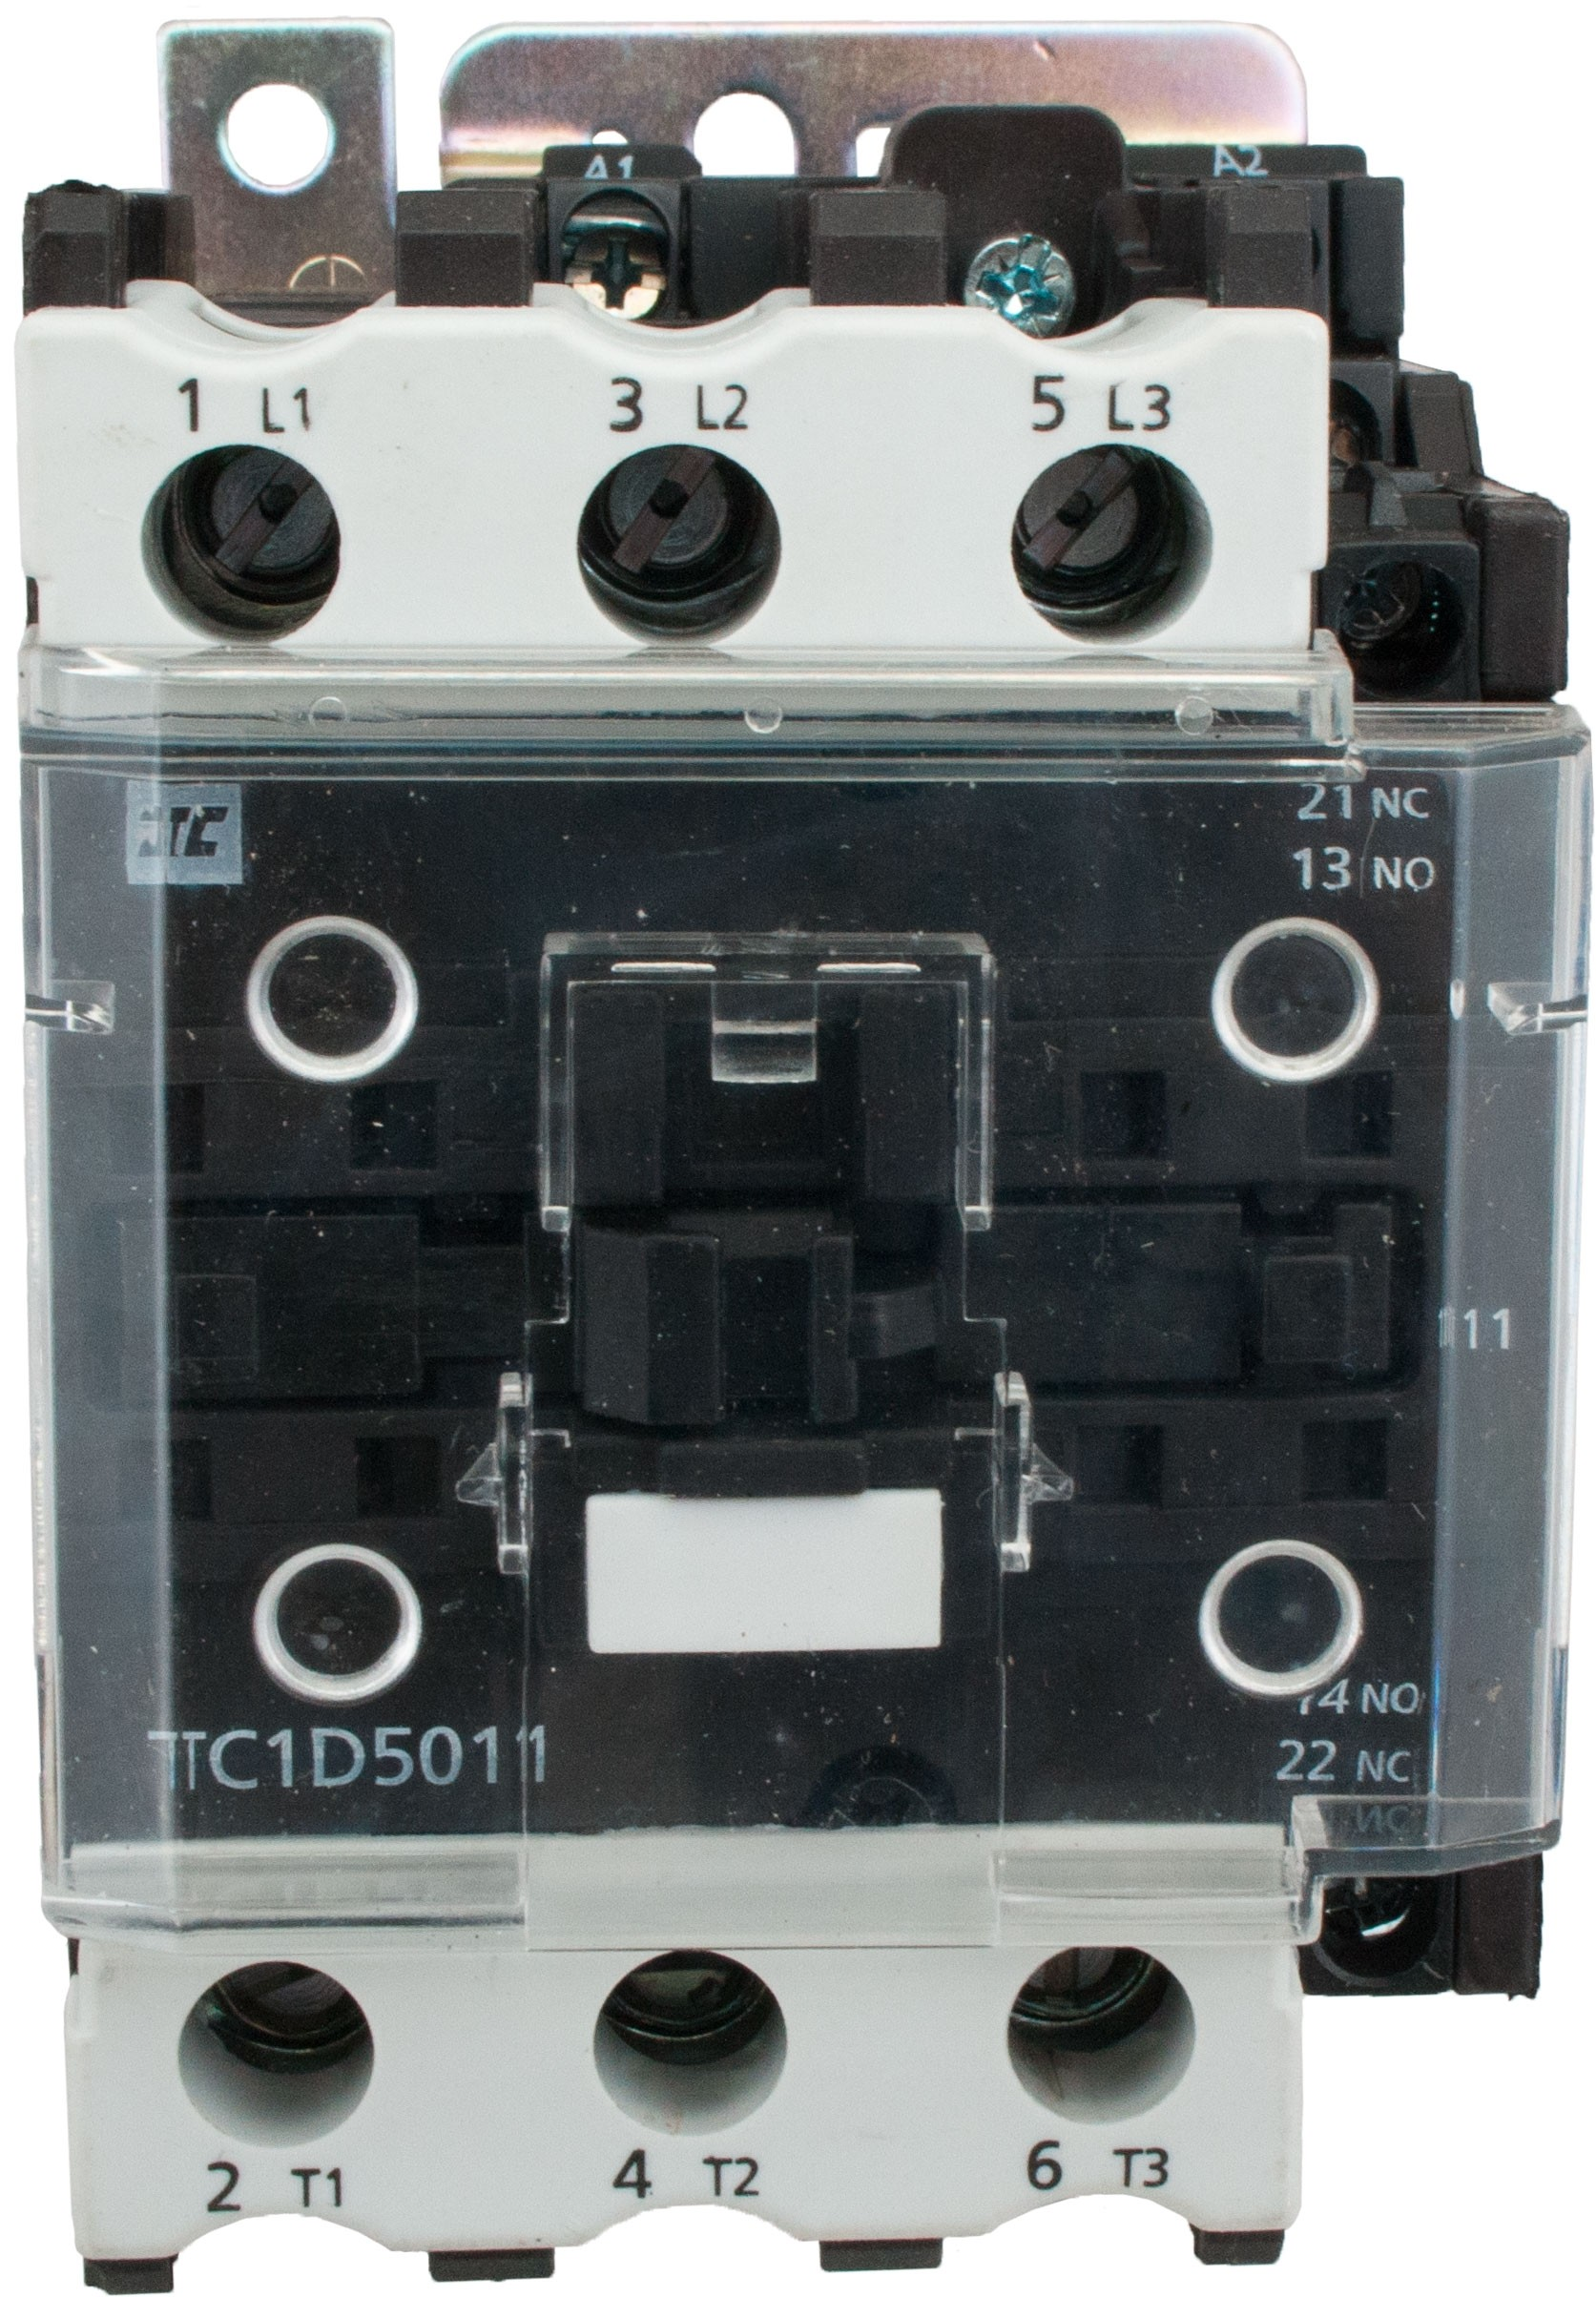 3 Pole Contactor 50 Amp 1 N O C 240 Volt Ac Coil Tc1d5011u7 Cole Hersee Heavy Duty Spdt Momentary Toggle Switch 5502155021bx Be The First To Review This Product